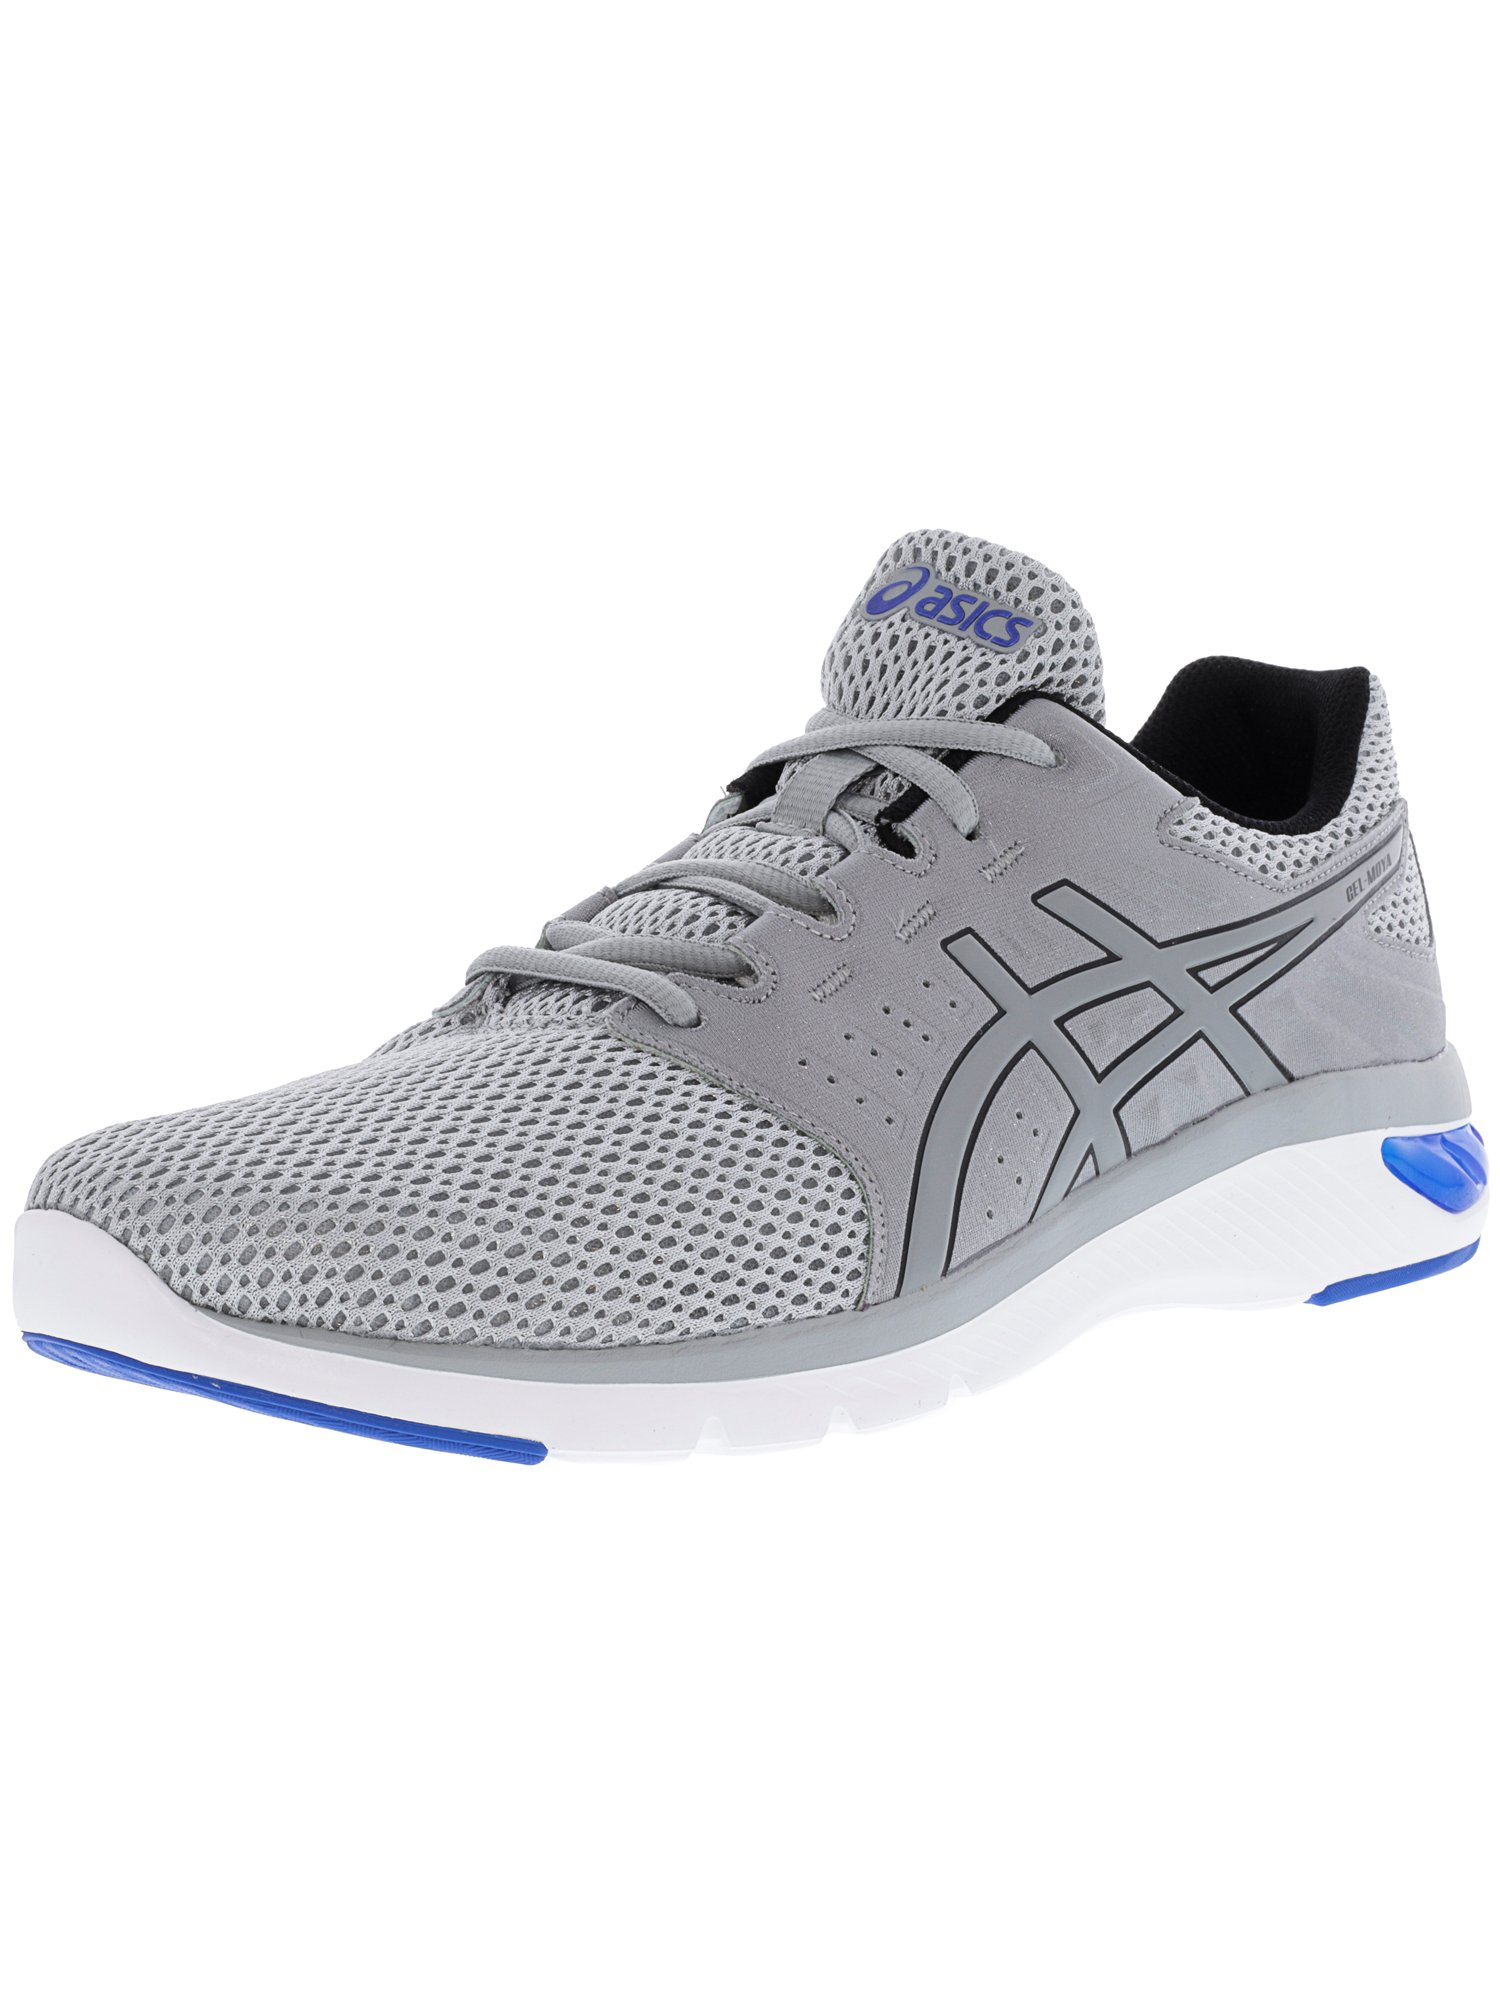 Asics Men's Gel-Moya Mid Grey / Victoria Blue Ankle-High Running Shoe - 9.5M